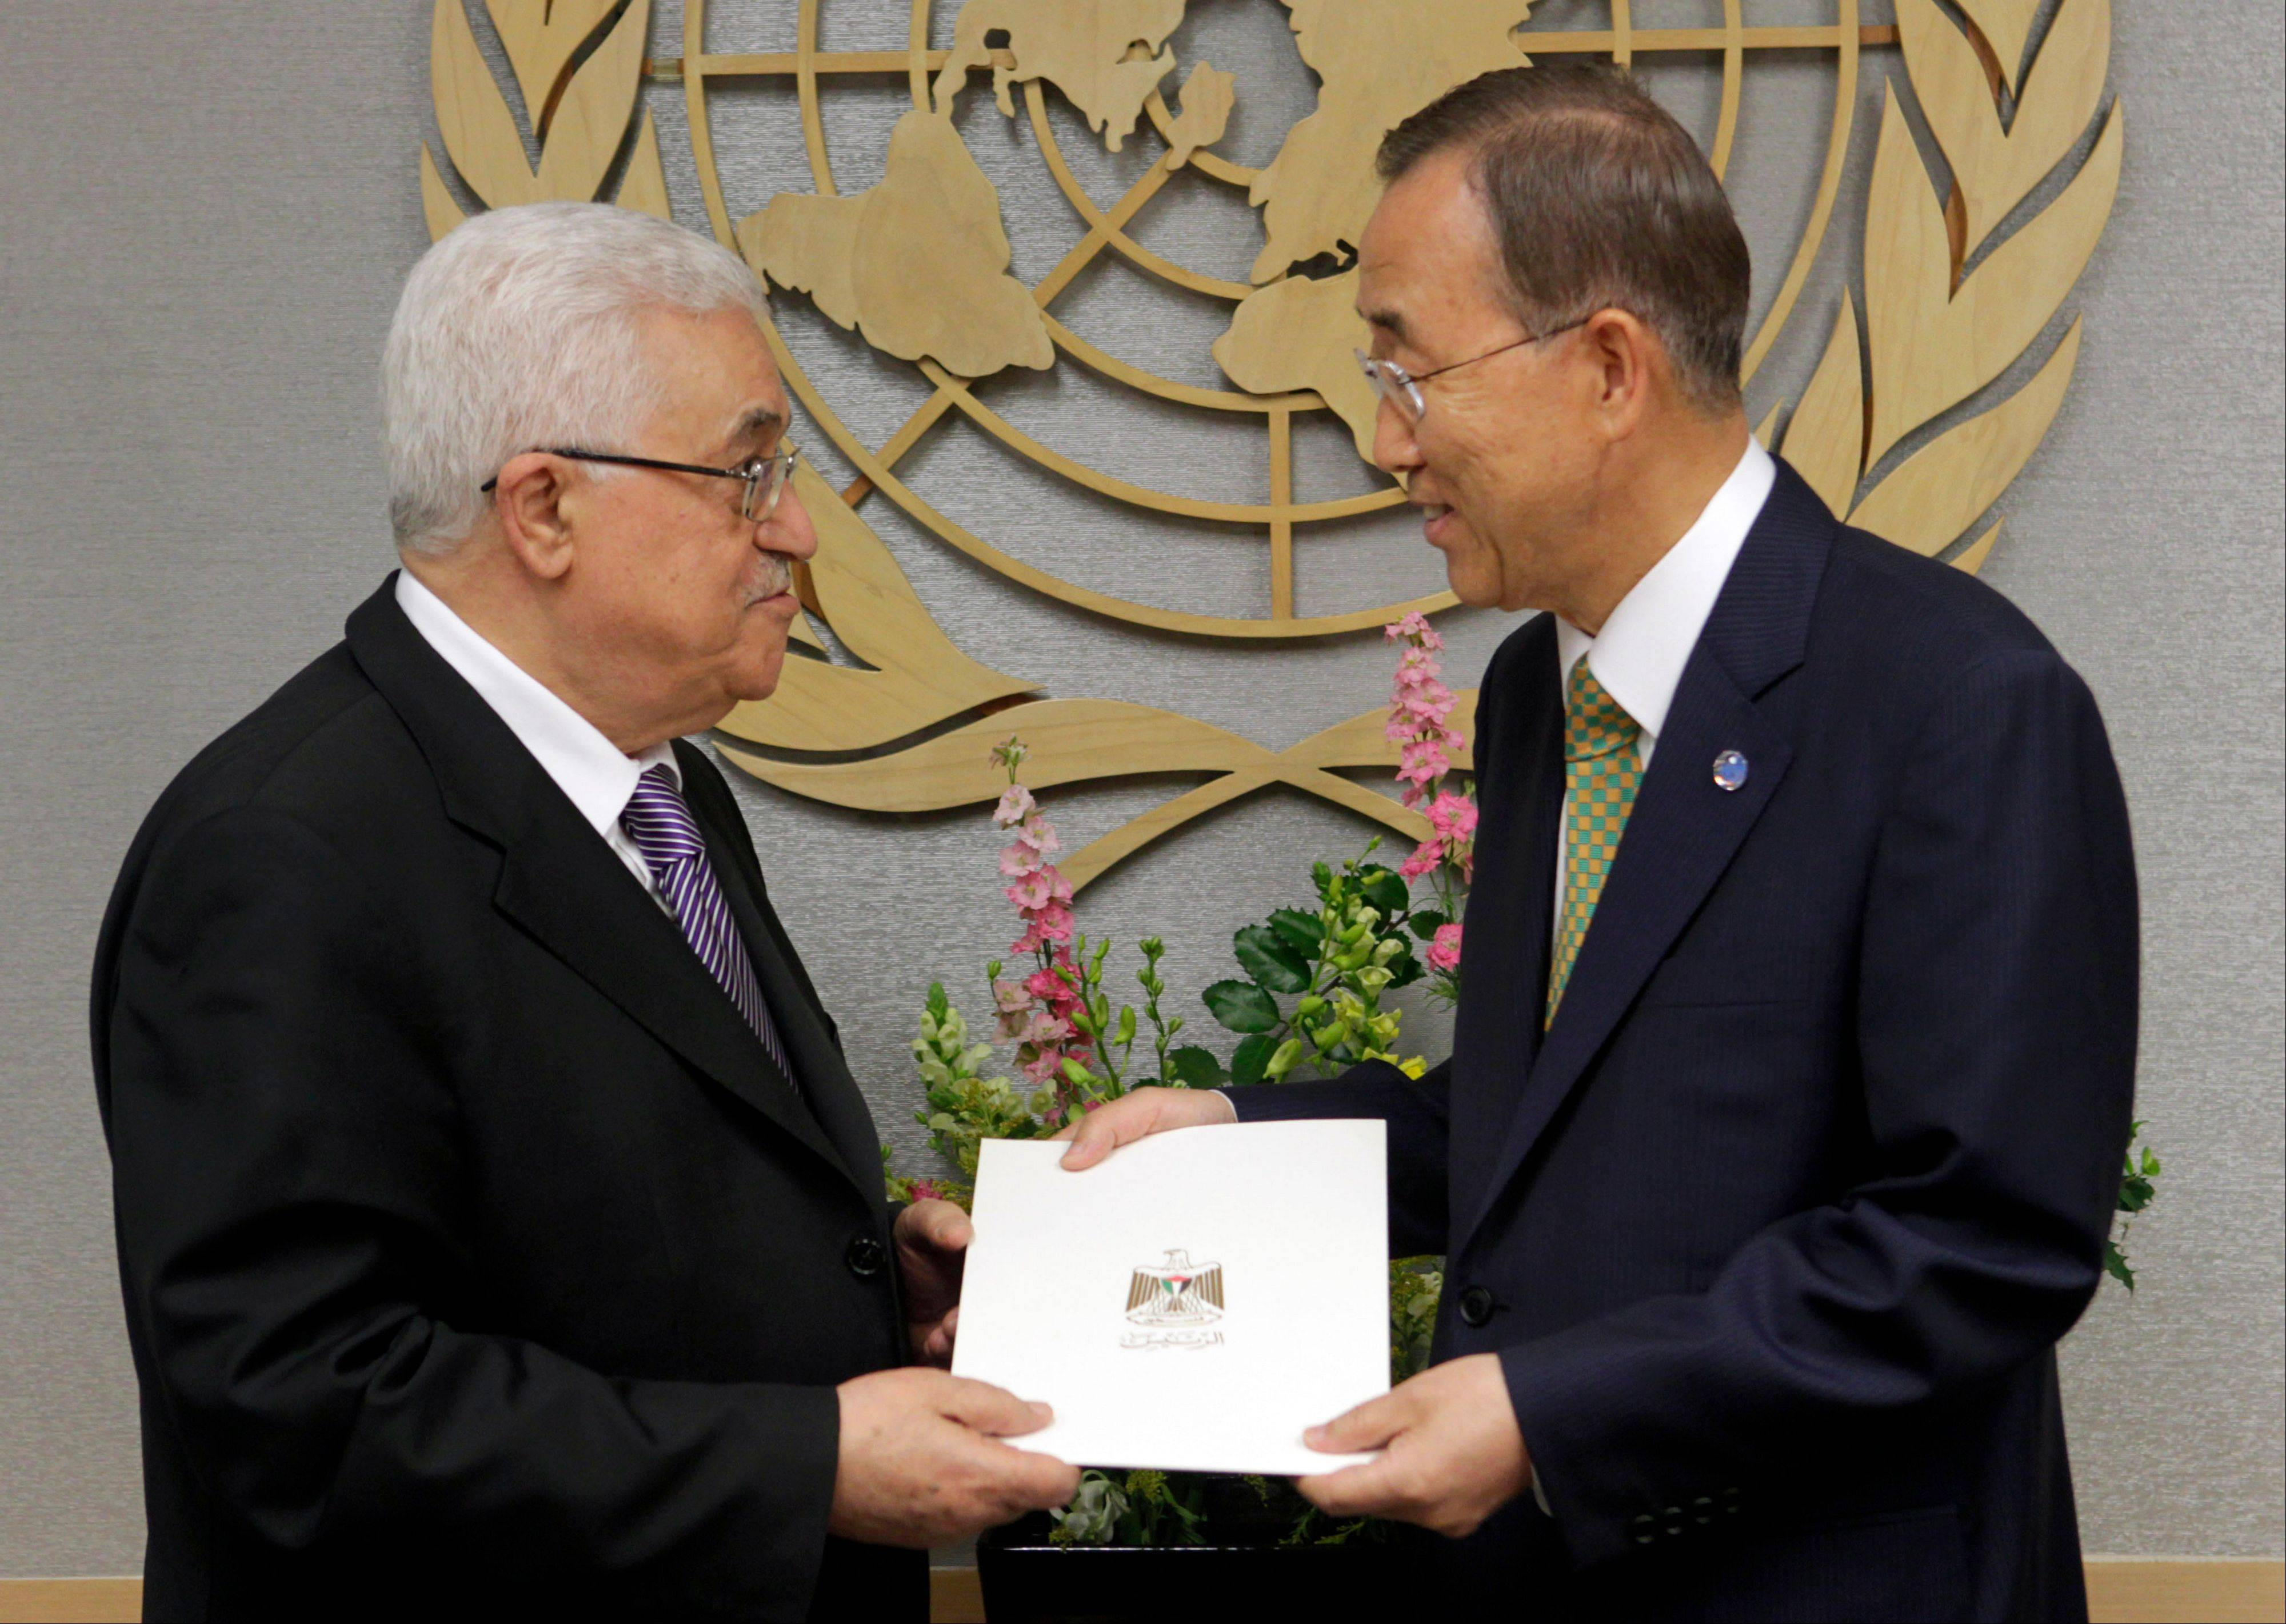 Palestinian President Mahmoud Abbas, left, gives a letter requesting recognition of Palestine as a state to Secretary-General Ban Ki-moon during the 66th session of the General Assembly at United Nations headquarters Friday, Sept. 23, 2011.